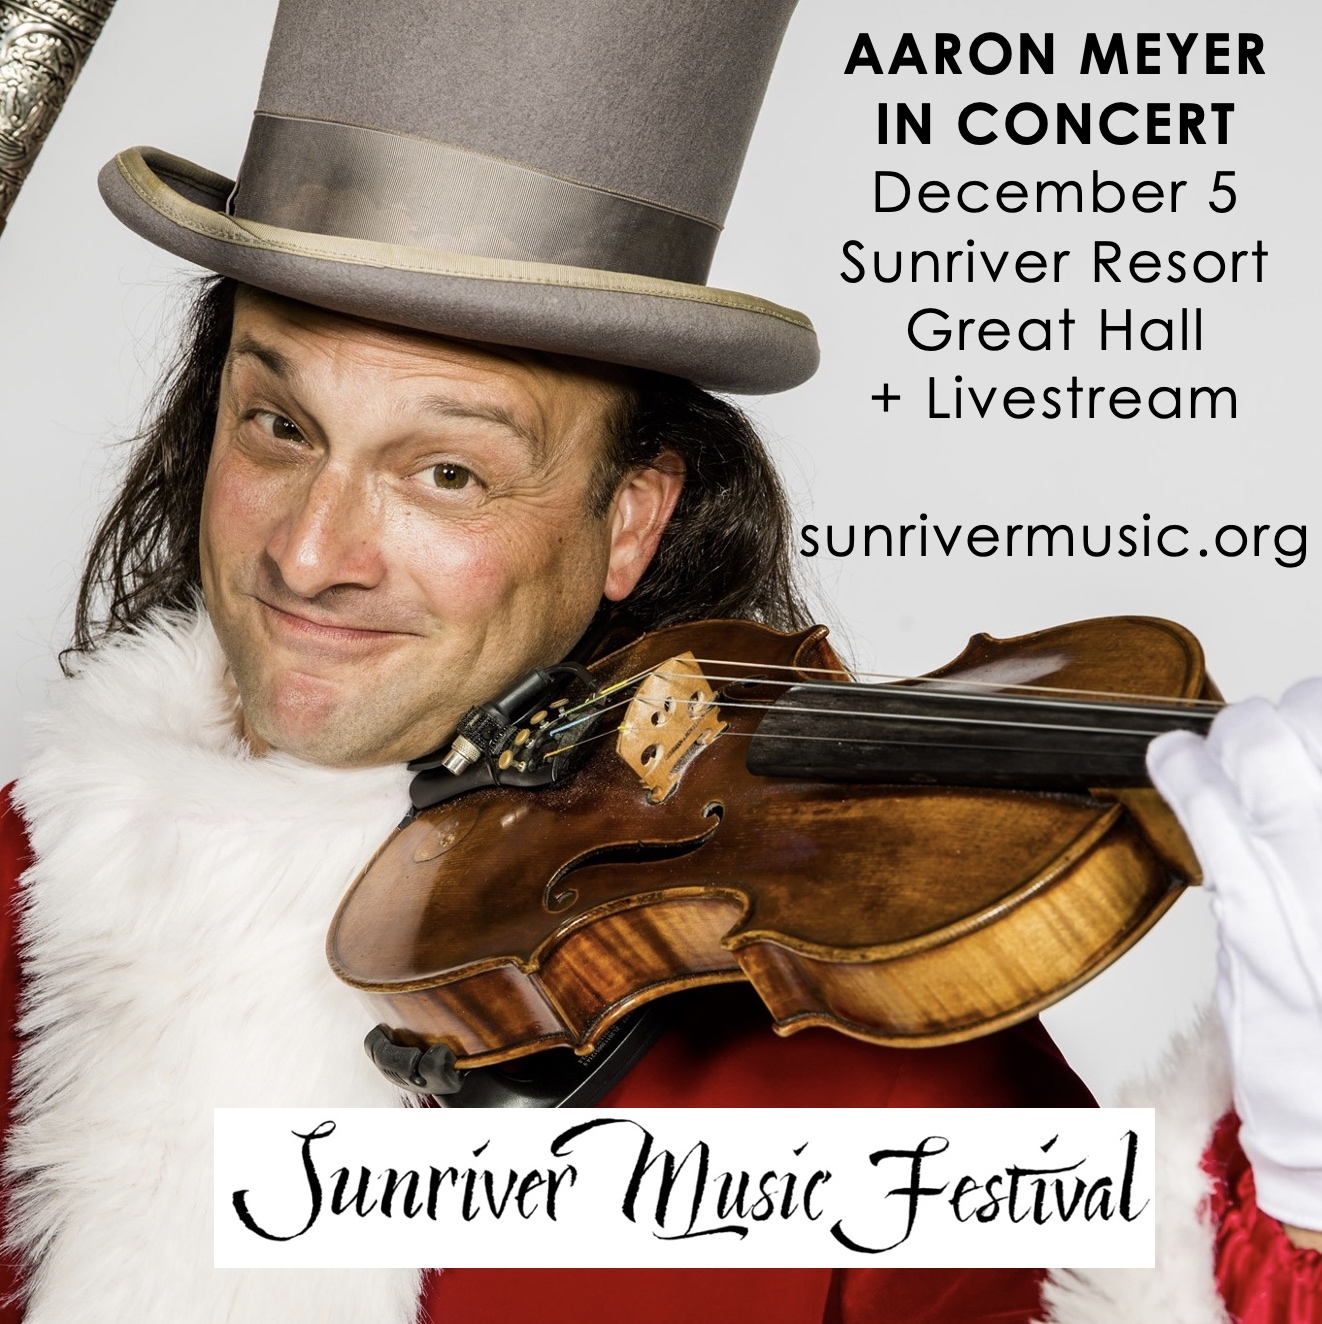 Aaron Meyer Image for Online Calendars smaller